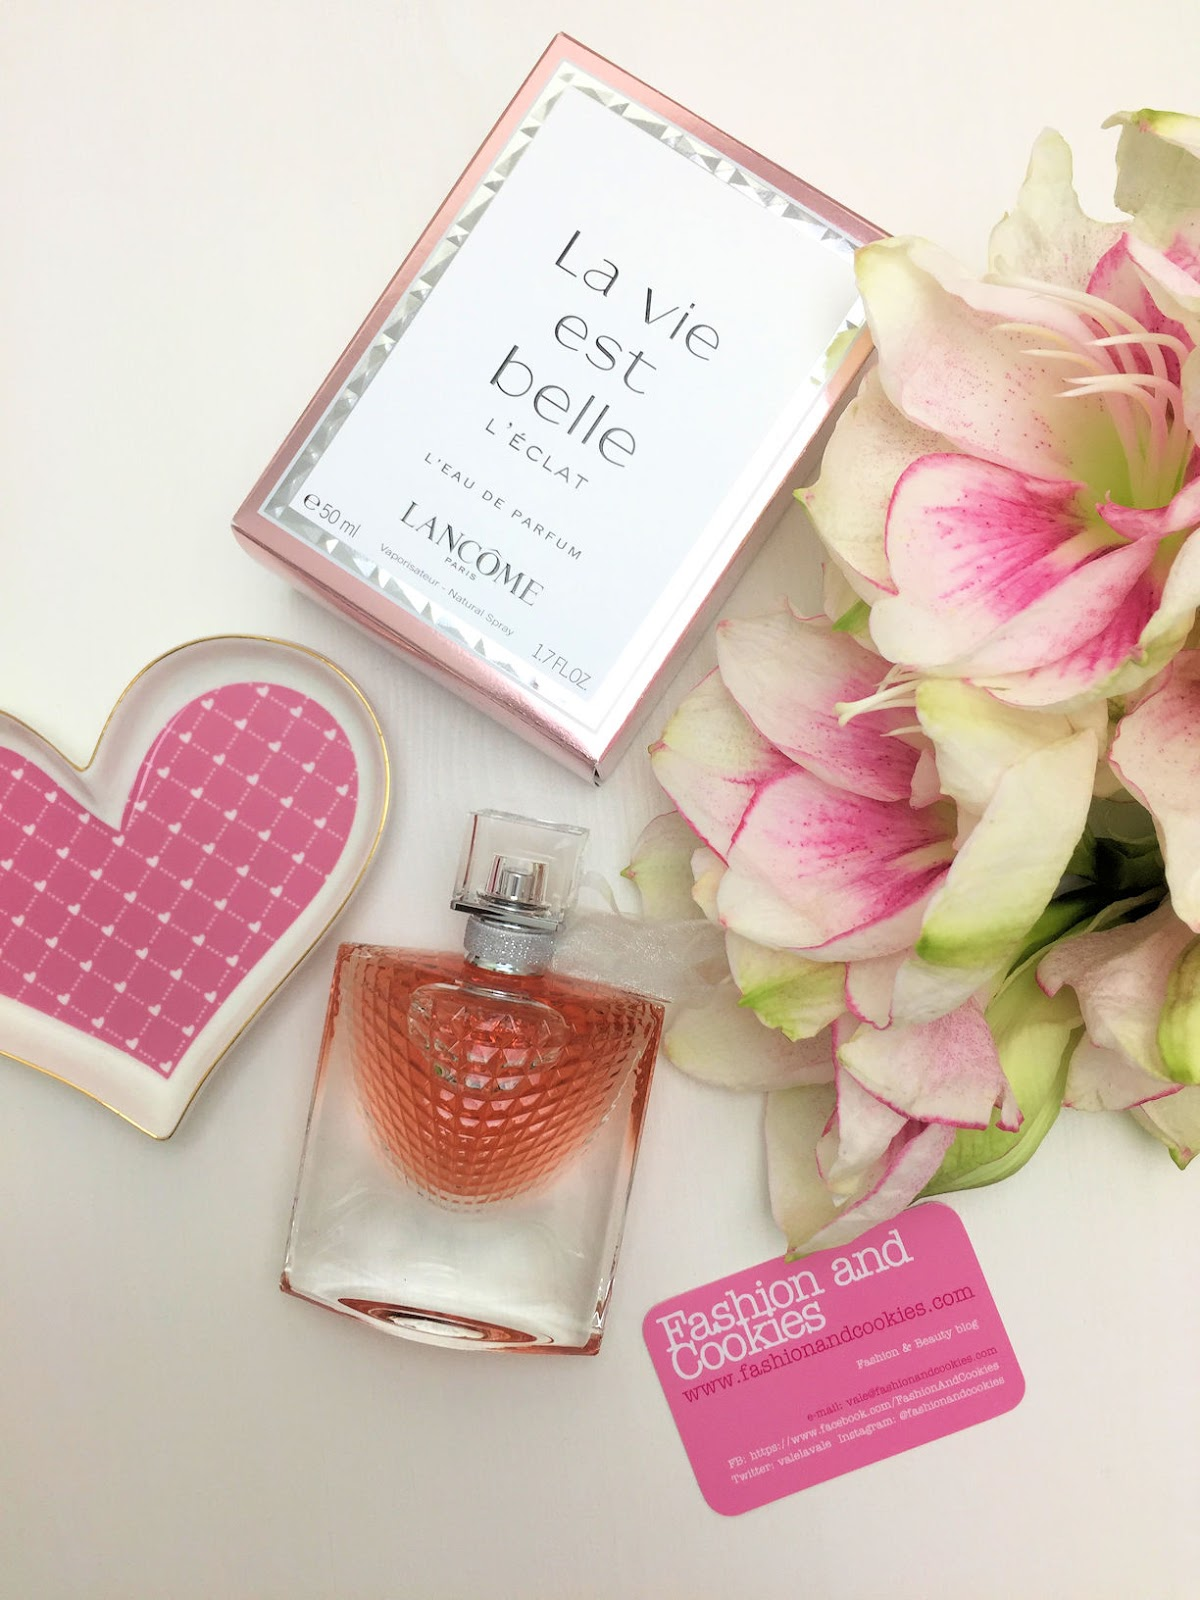 Lancôme La Vie Est Belle L'Eclat profumo da regalare su Fashion and Cookies fashion and beauty blog